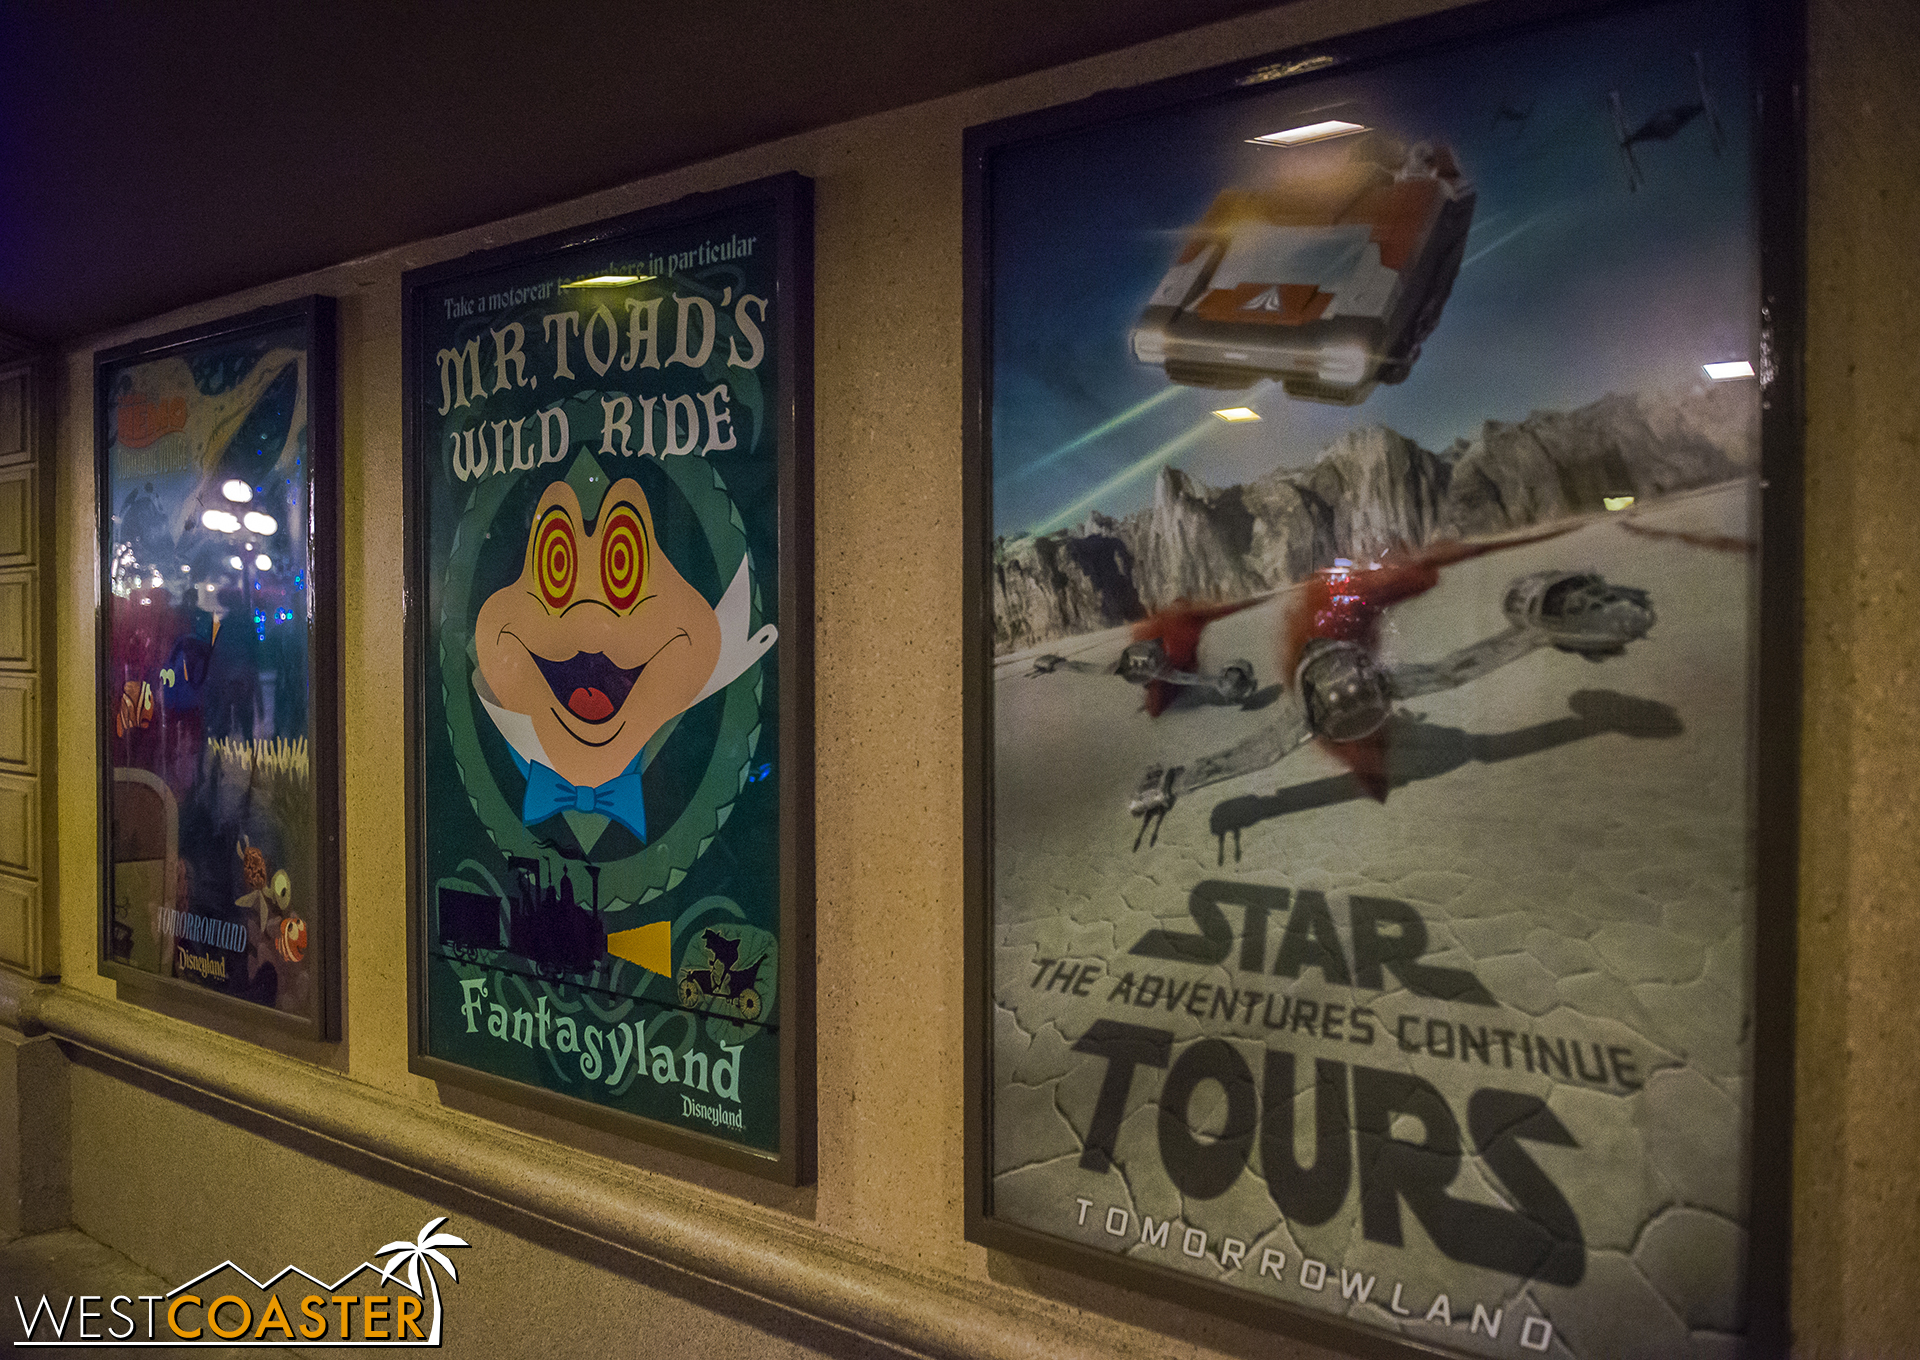 Star Tours continues to get itself into trouble joining other planets' space and air battles.